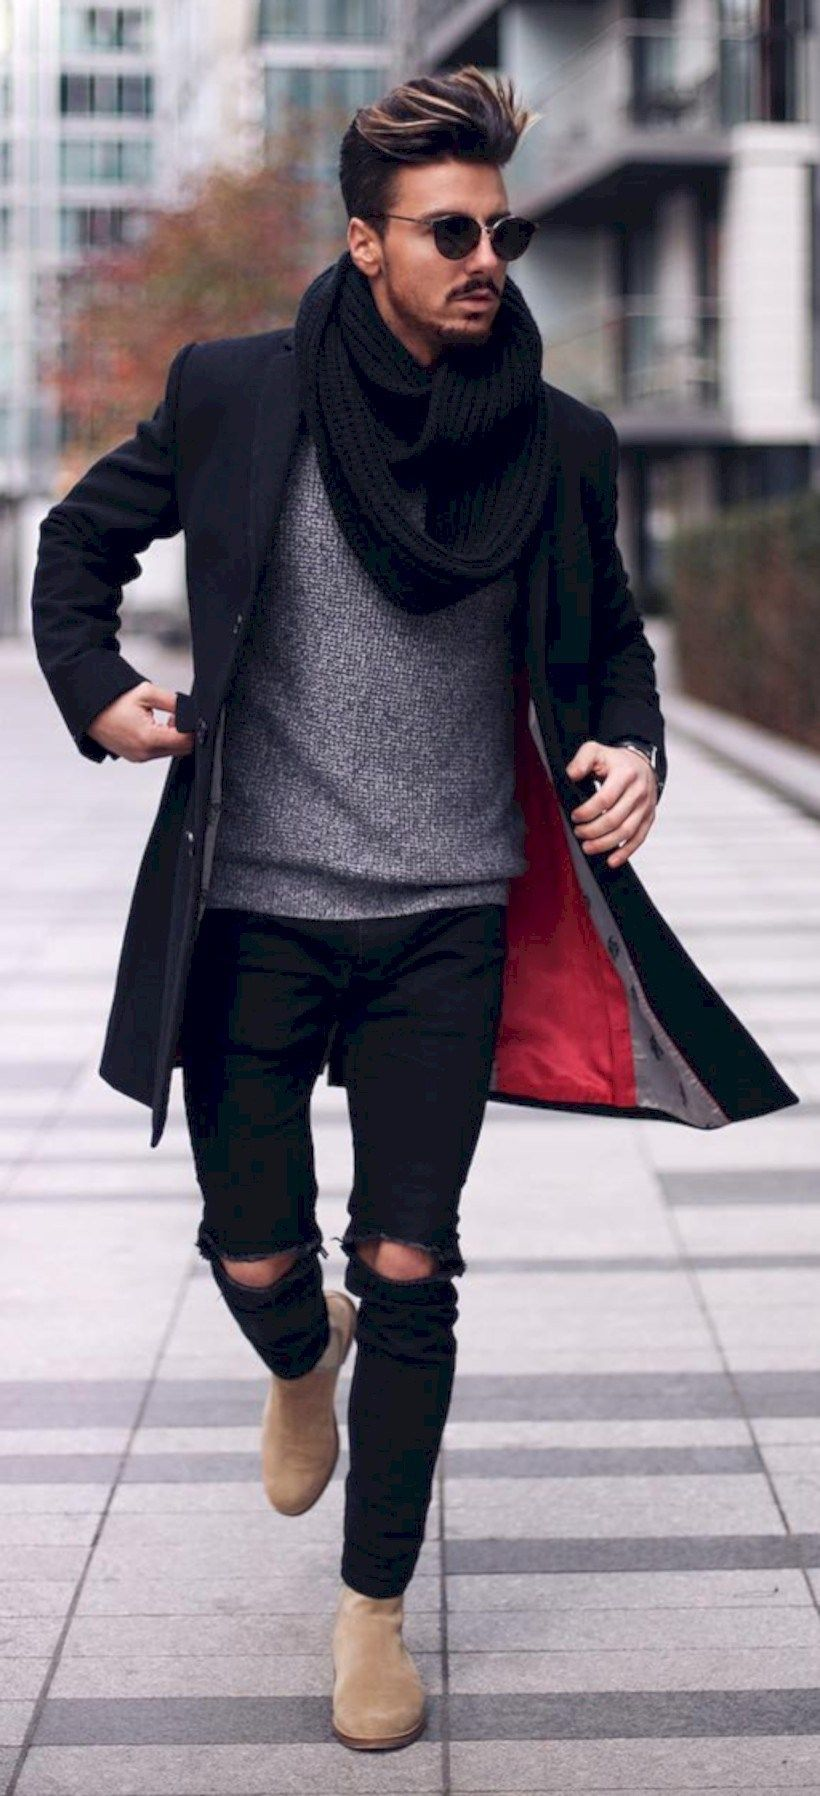 b31cbaff1f5 41 Super Casual Winter Outfit for Modern Men